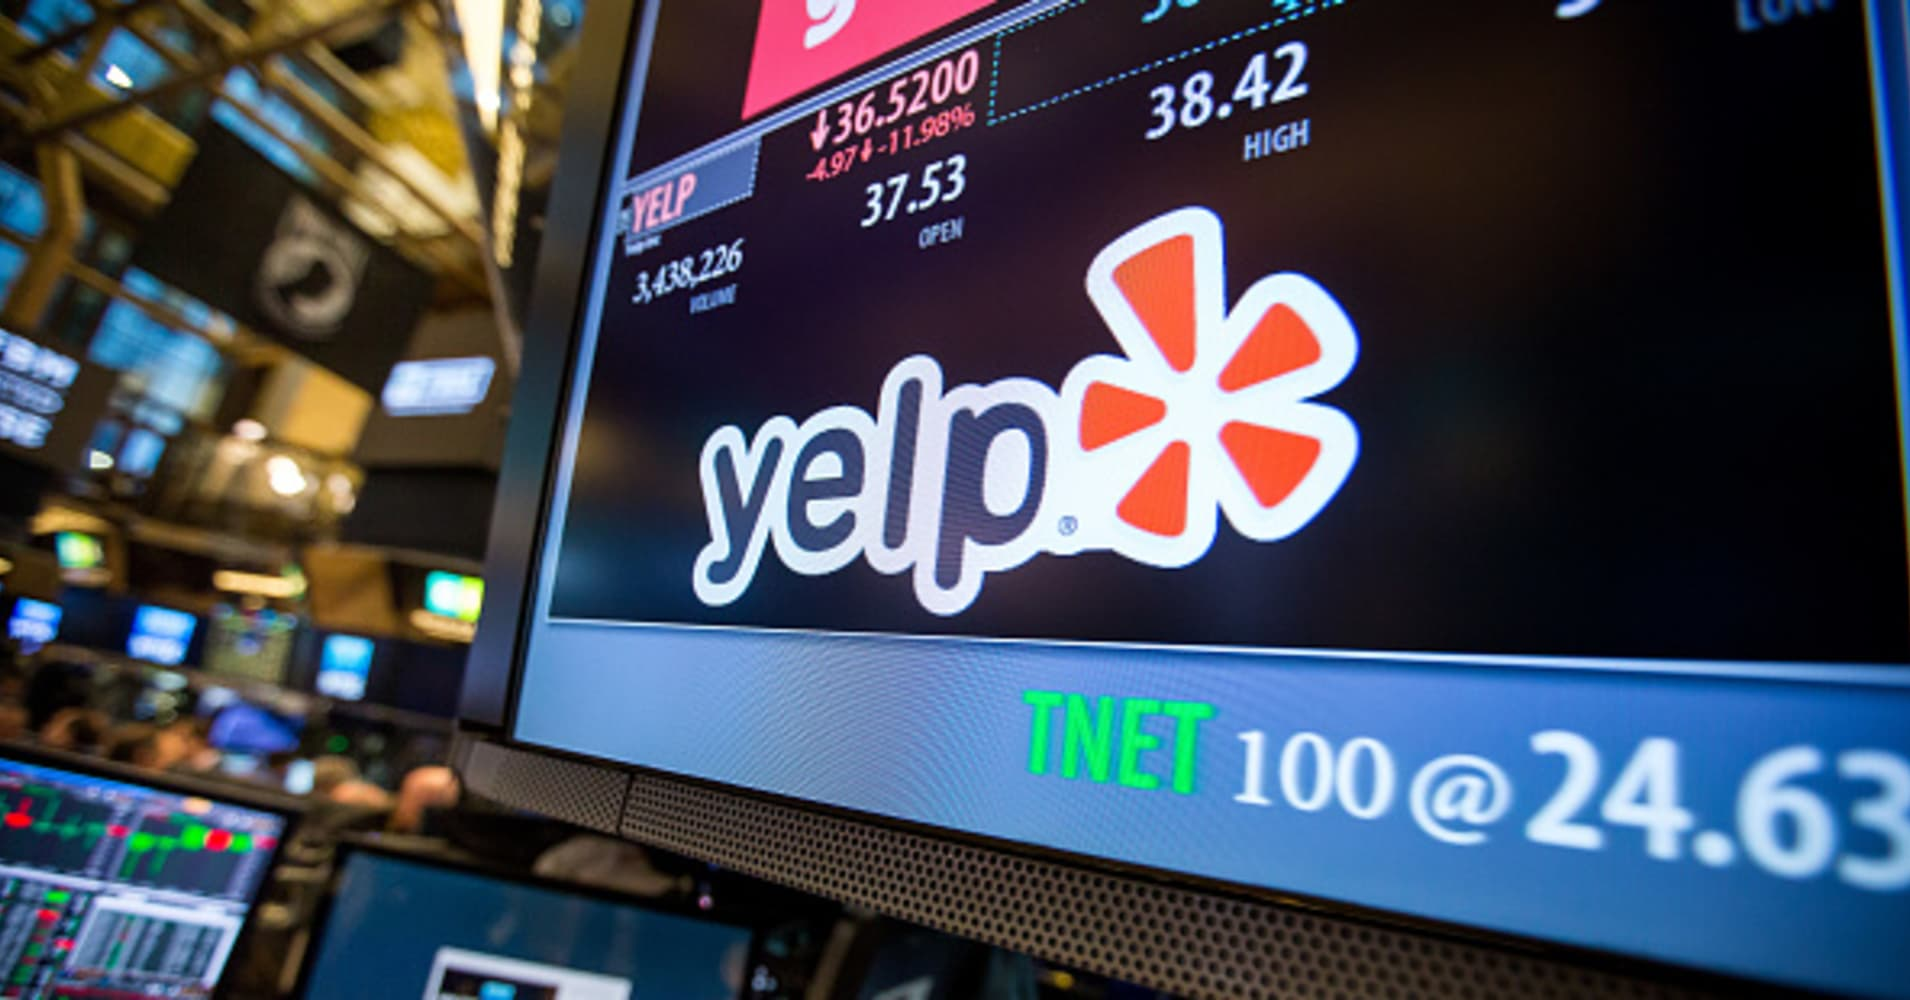 Yelp Craters 30% as Advertisers Abandon the Site